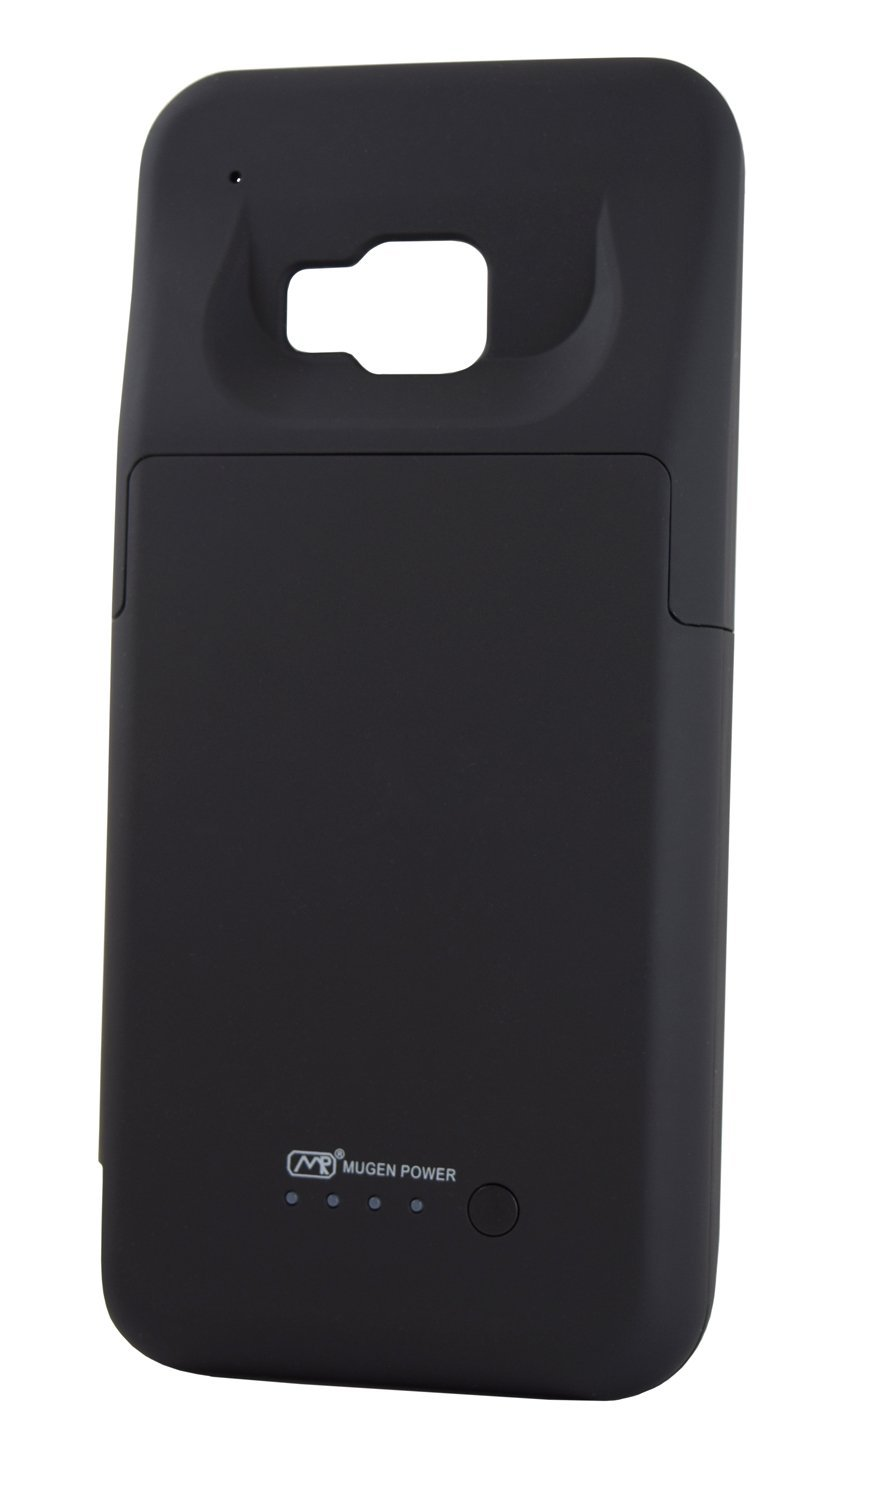 Mugen Power Extended 3700mAh Battery Case for HTC One M9. 2X More Power!